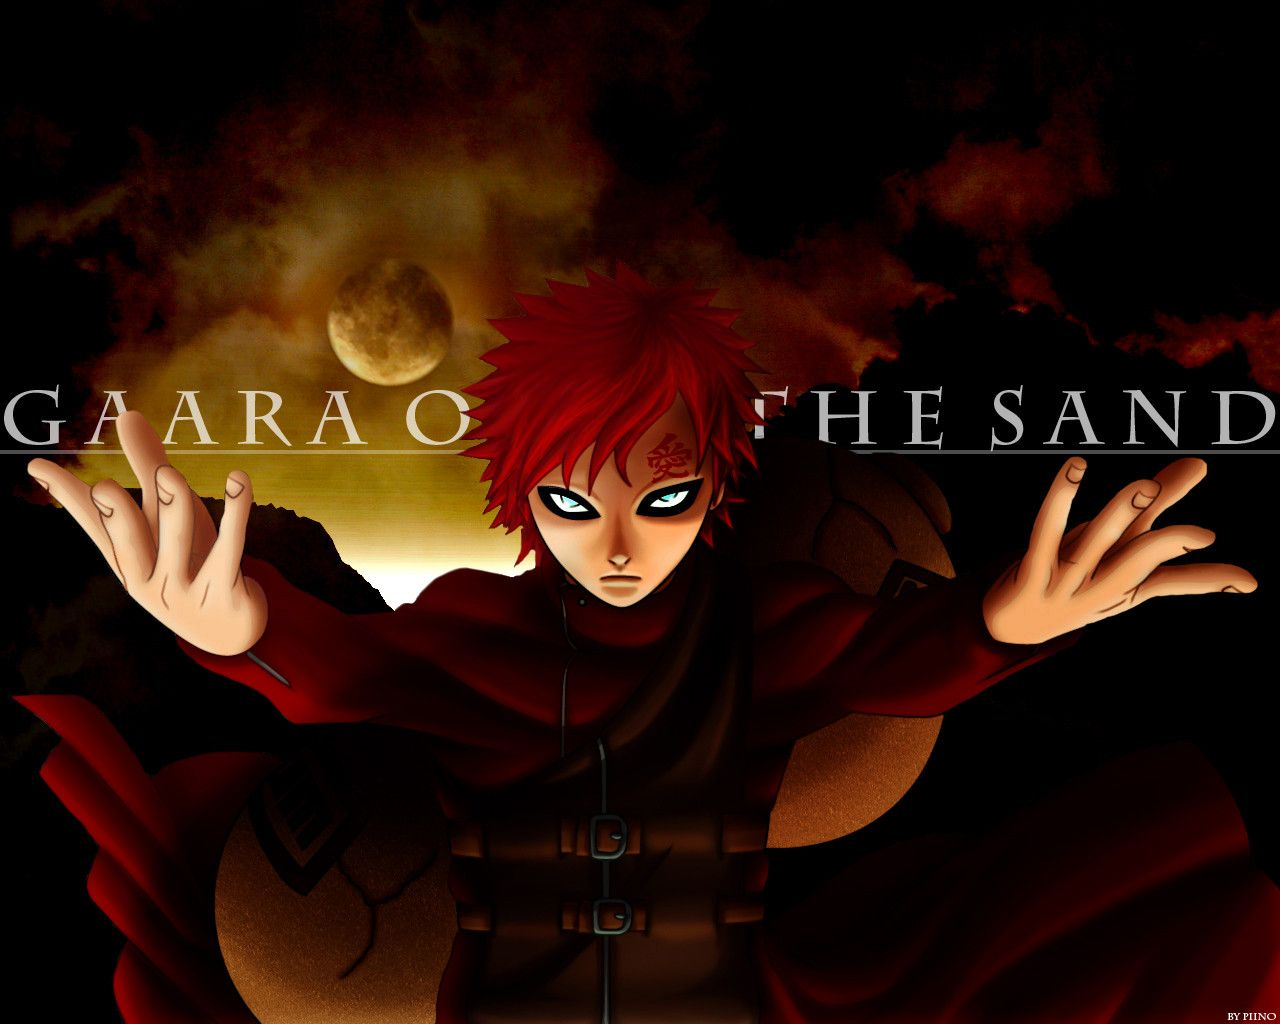 Gaara Naruto Wallpaper - WallpaperSafari